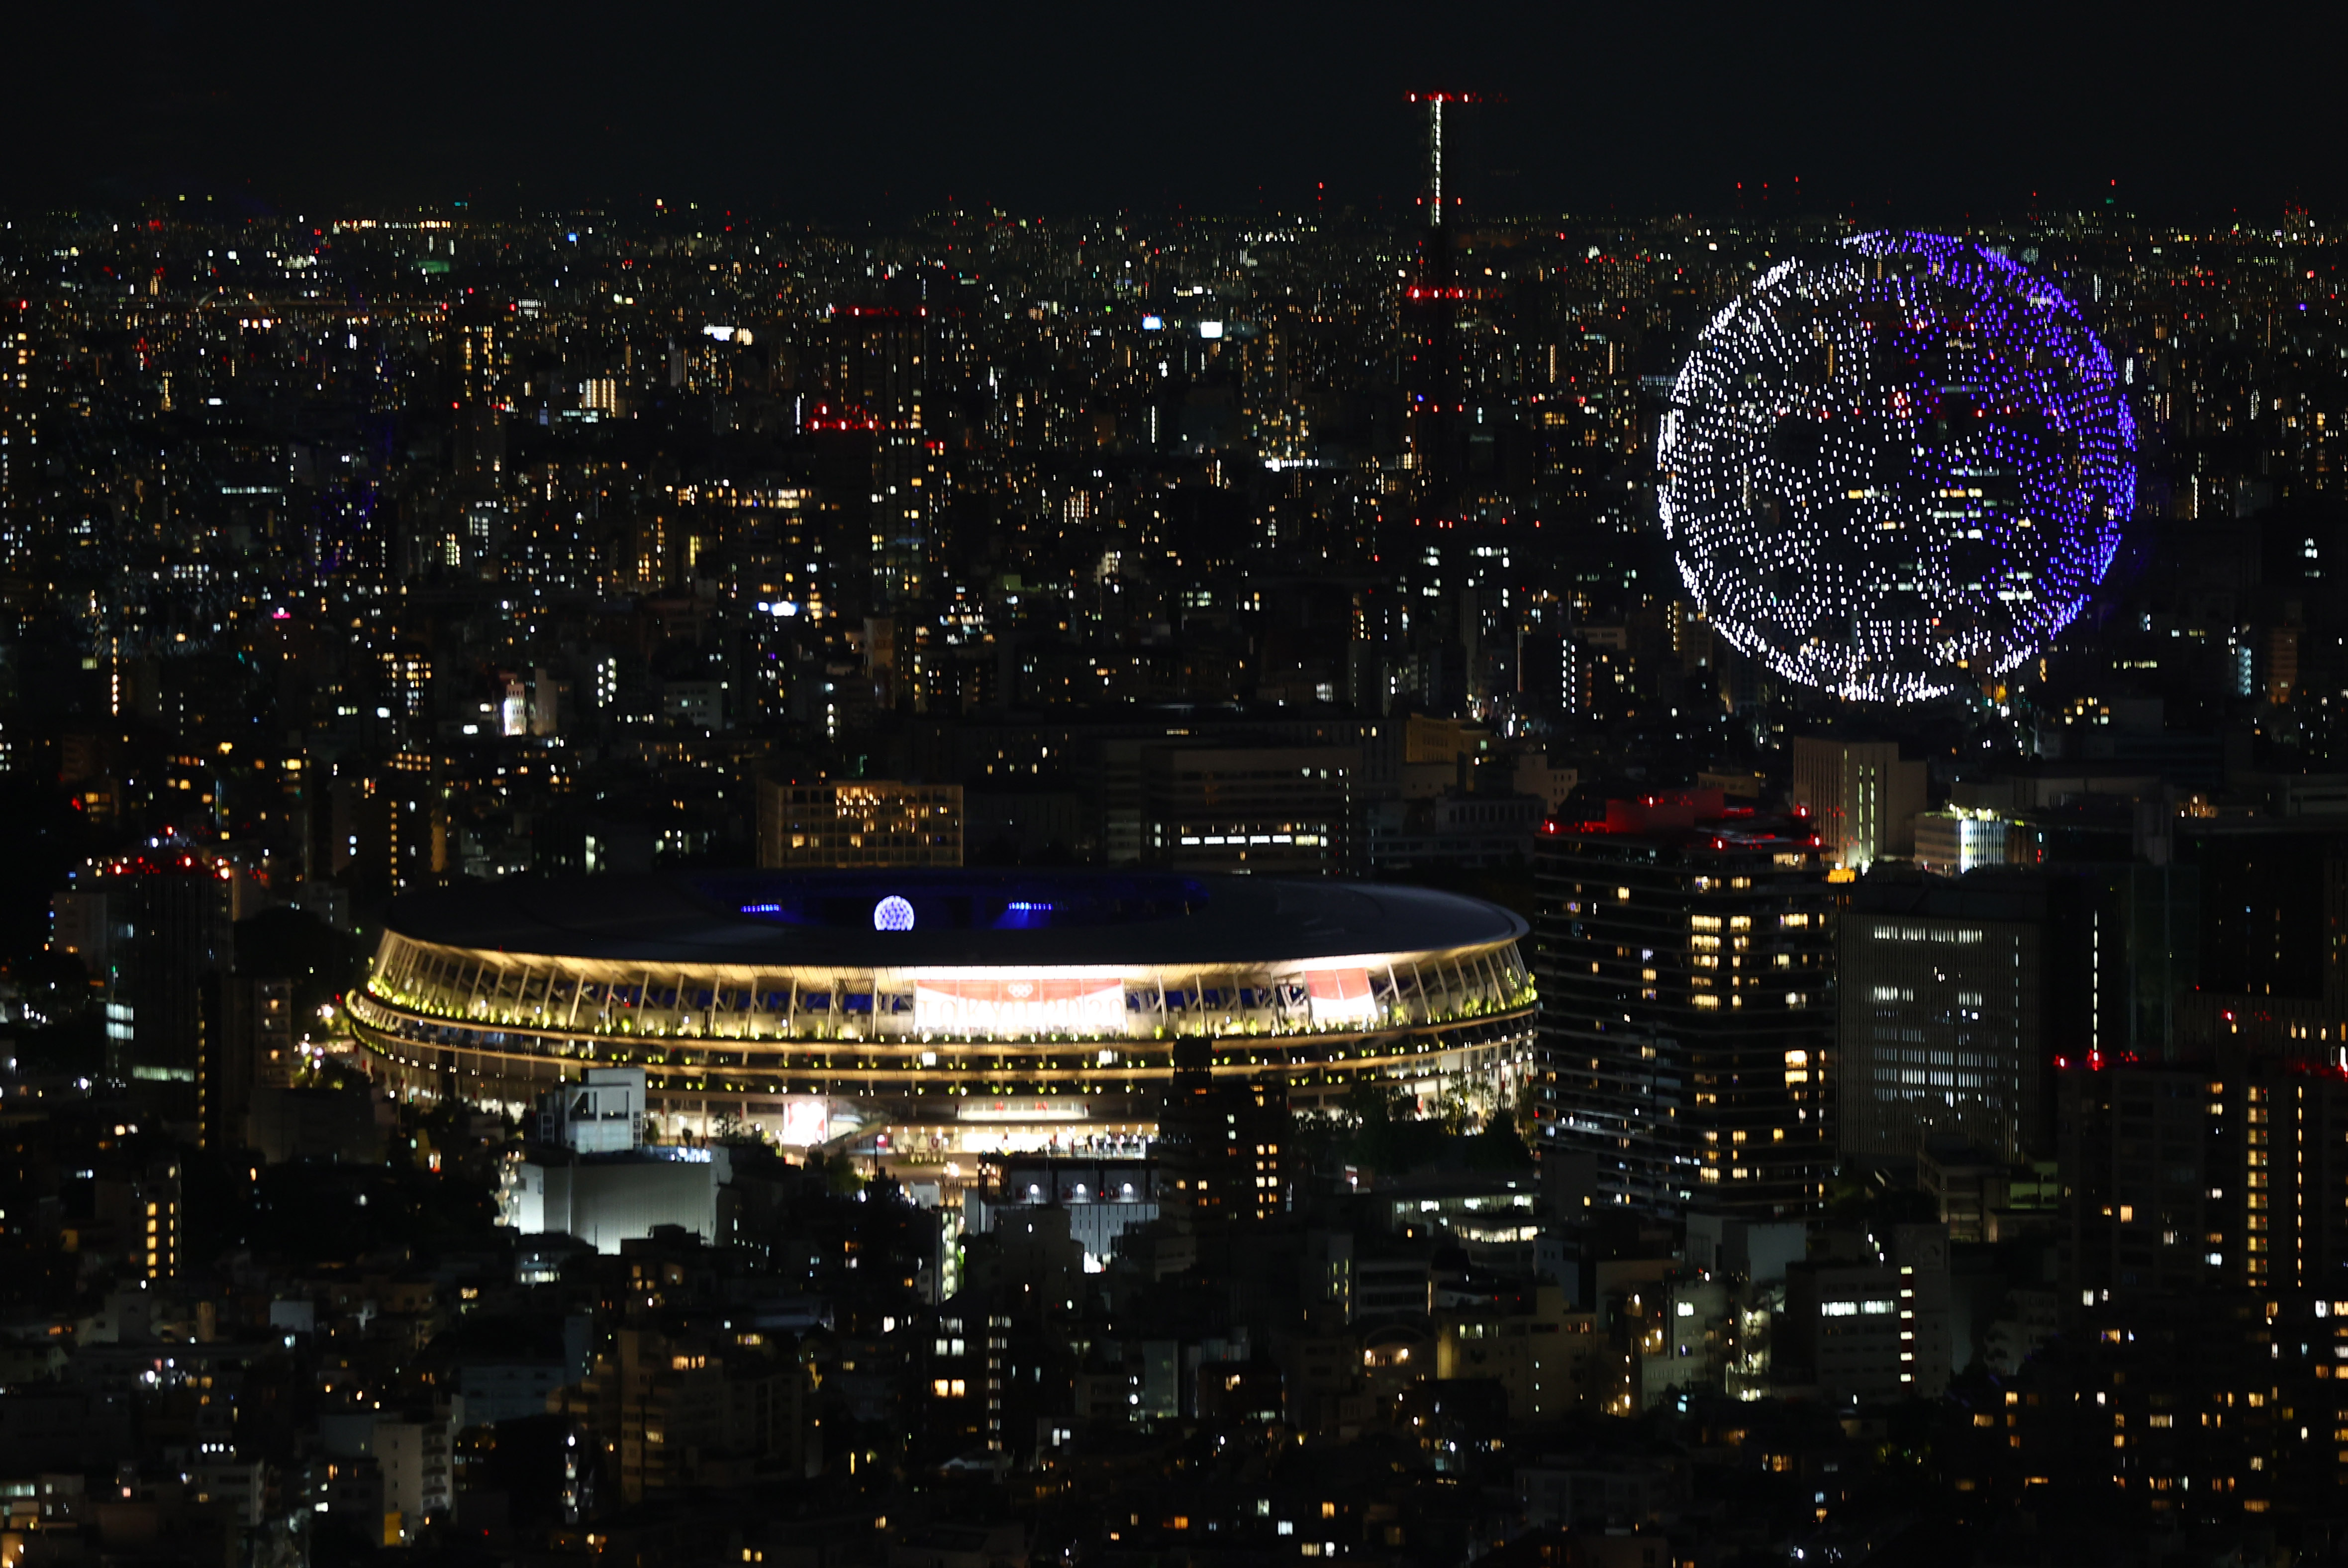 Tokyo 2020 Olympics - The Tokyo 2020 Olympics Opening Ceremony - Olympic Stadium, Tokyo, Japan - July 23, 2021. Drones form a shape of the world during the opening ceremony, seen above the Olympic Stadium REUTERS/Kim Kyung-Hoon